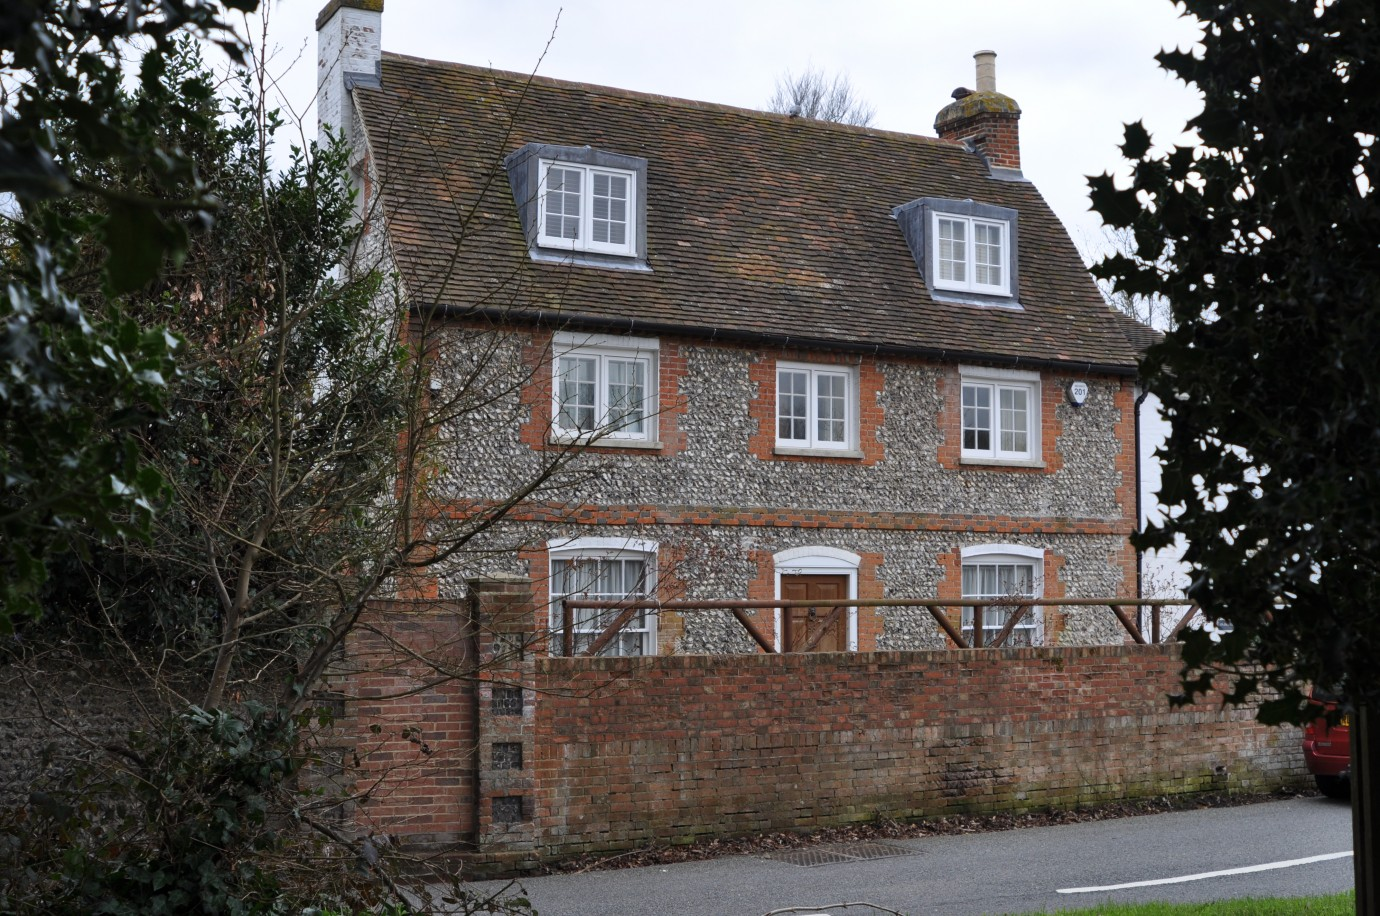 Averys House - Arundel